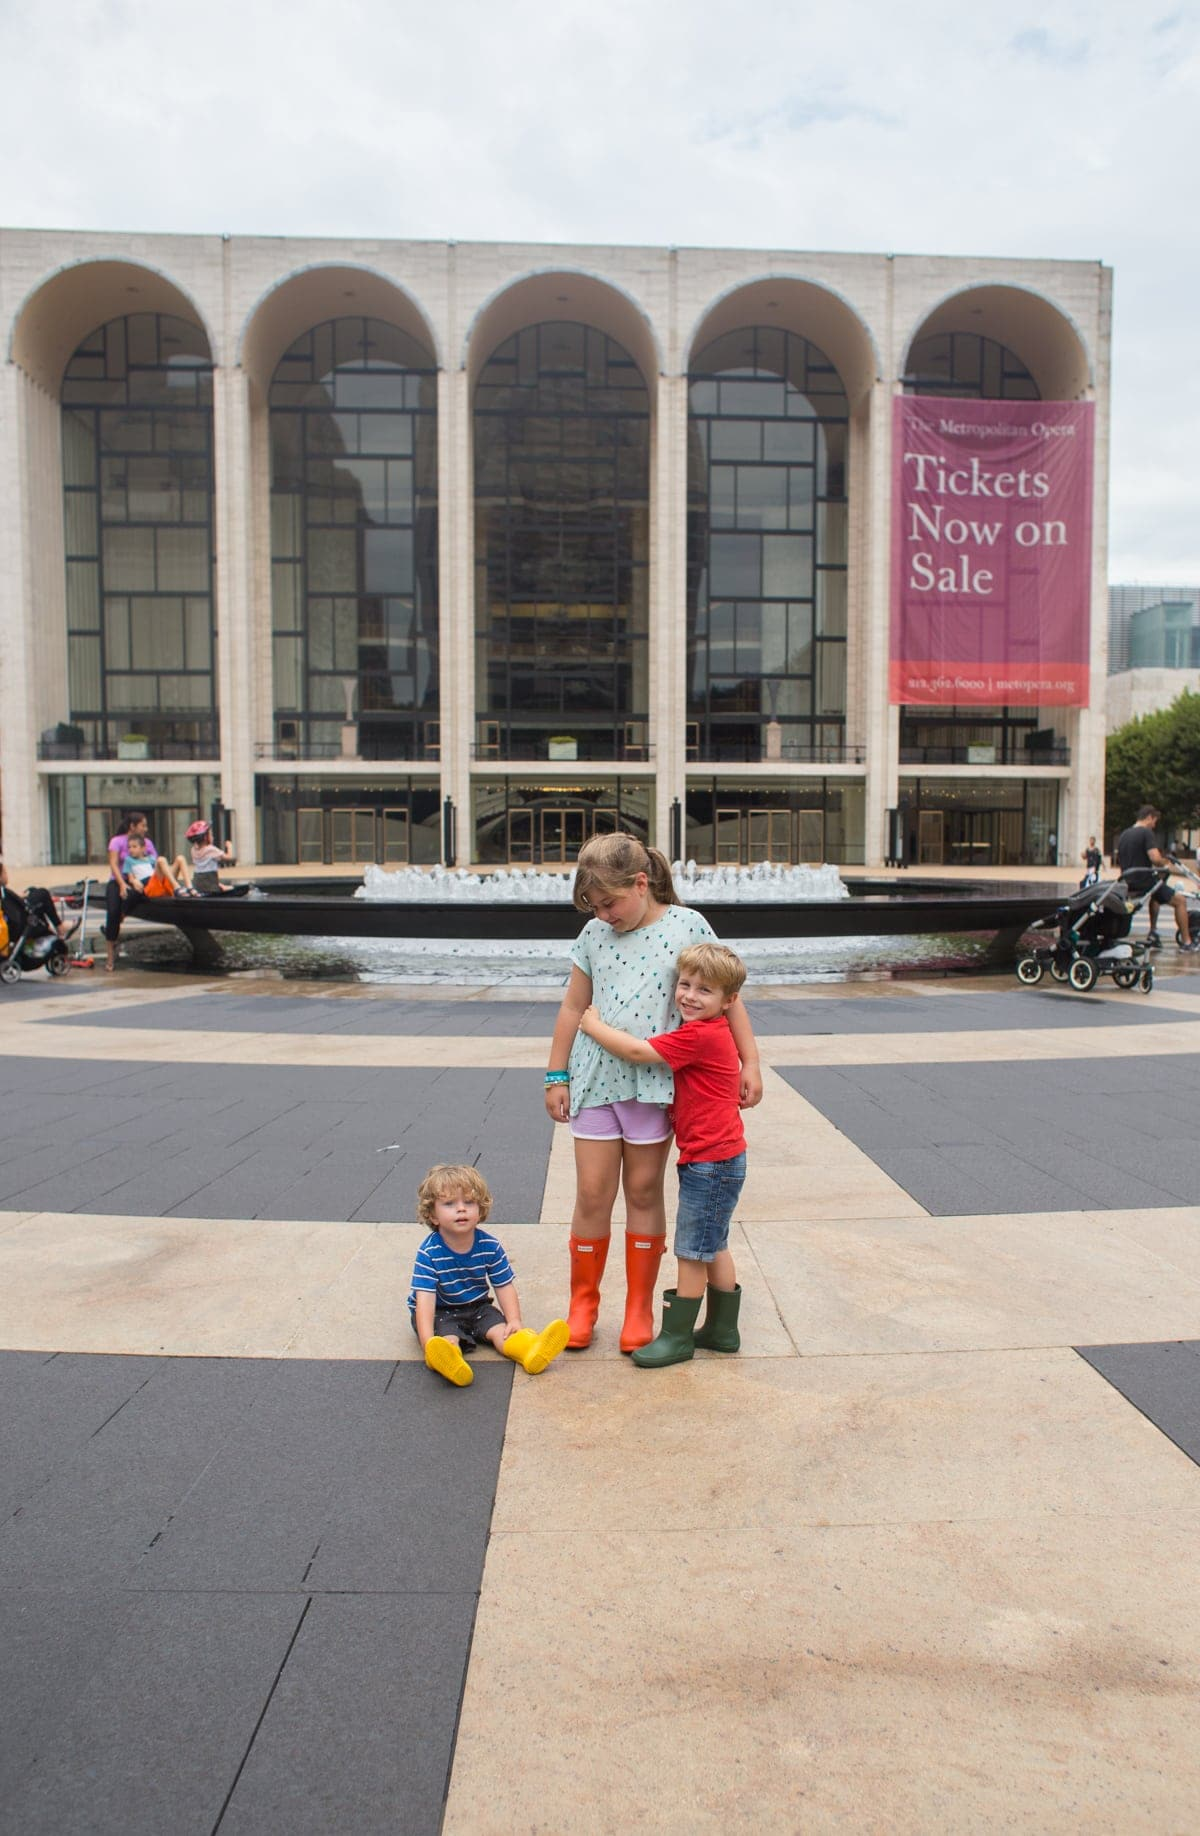 The kids at the Lincoln center